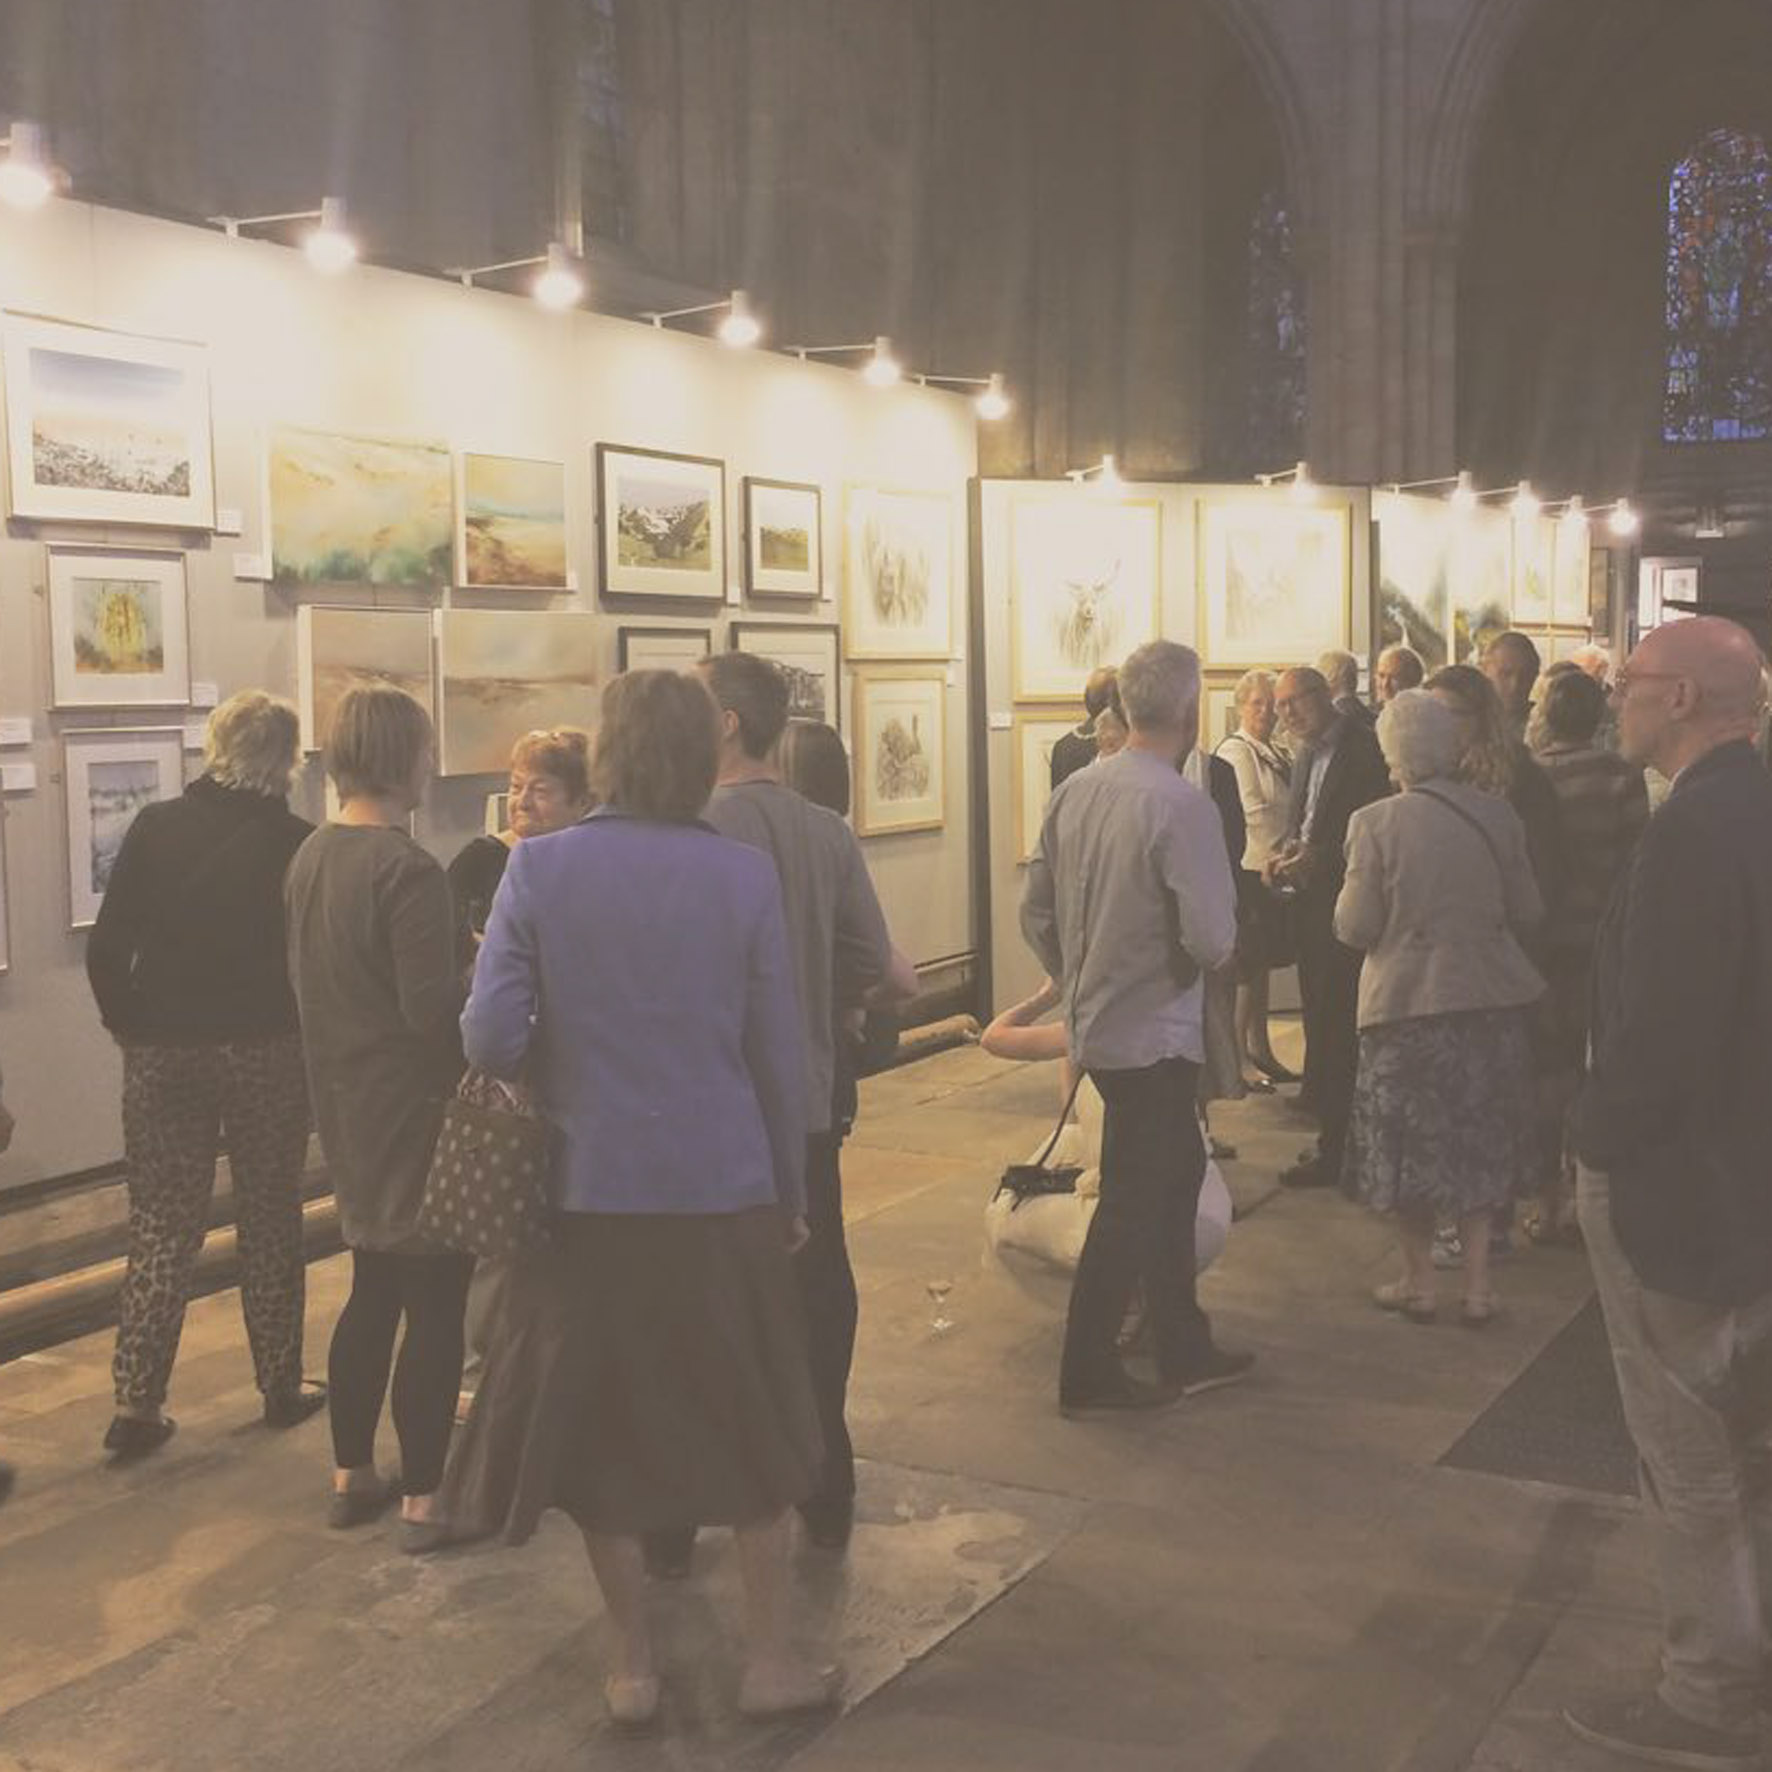 SOLO & GROUP EXHIBITIONS - The Great North Art Show, Ripon - 2017, 2015 & 2014Solo Exhibition, Chantry House Gallery - 2016The Priory Art Exhibition, Wetherby - 2016 & 2011North Yorkshire Open Studios - 2014RHS Harlow Carr Exhibition - 2009 to 2014Dales Countryside Museum Exhibition - 2013Masham Arts Festival Exhibition - 2009, 2011, 2013